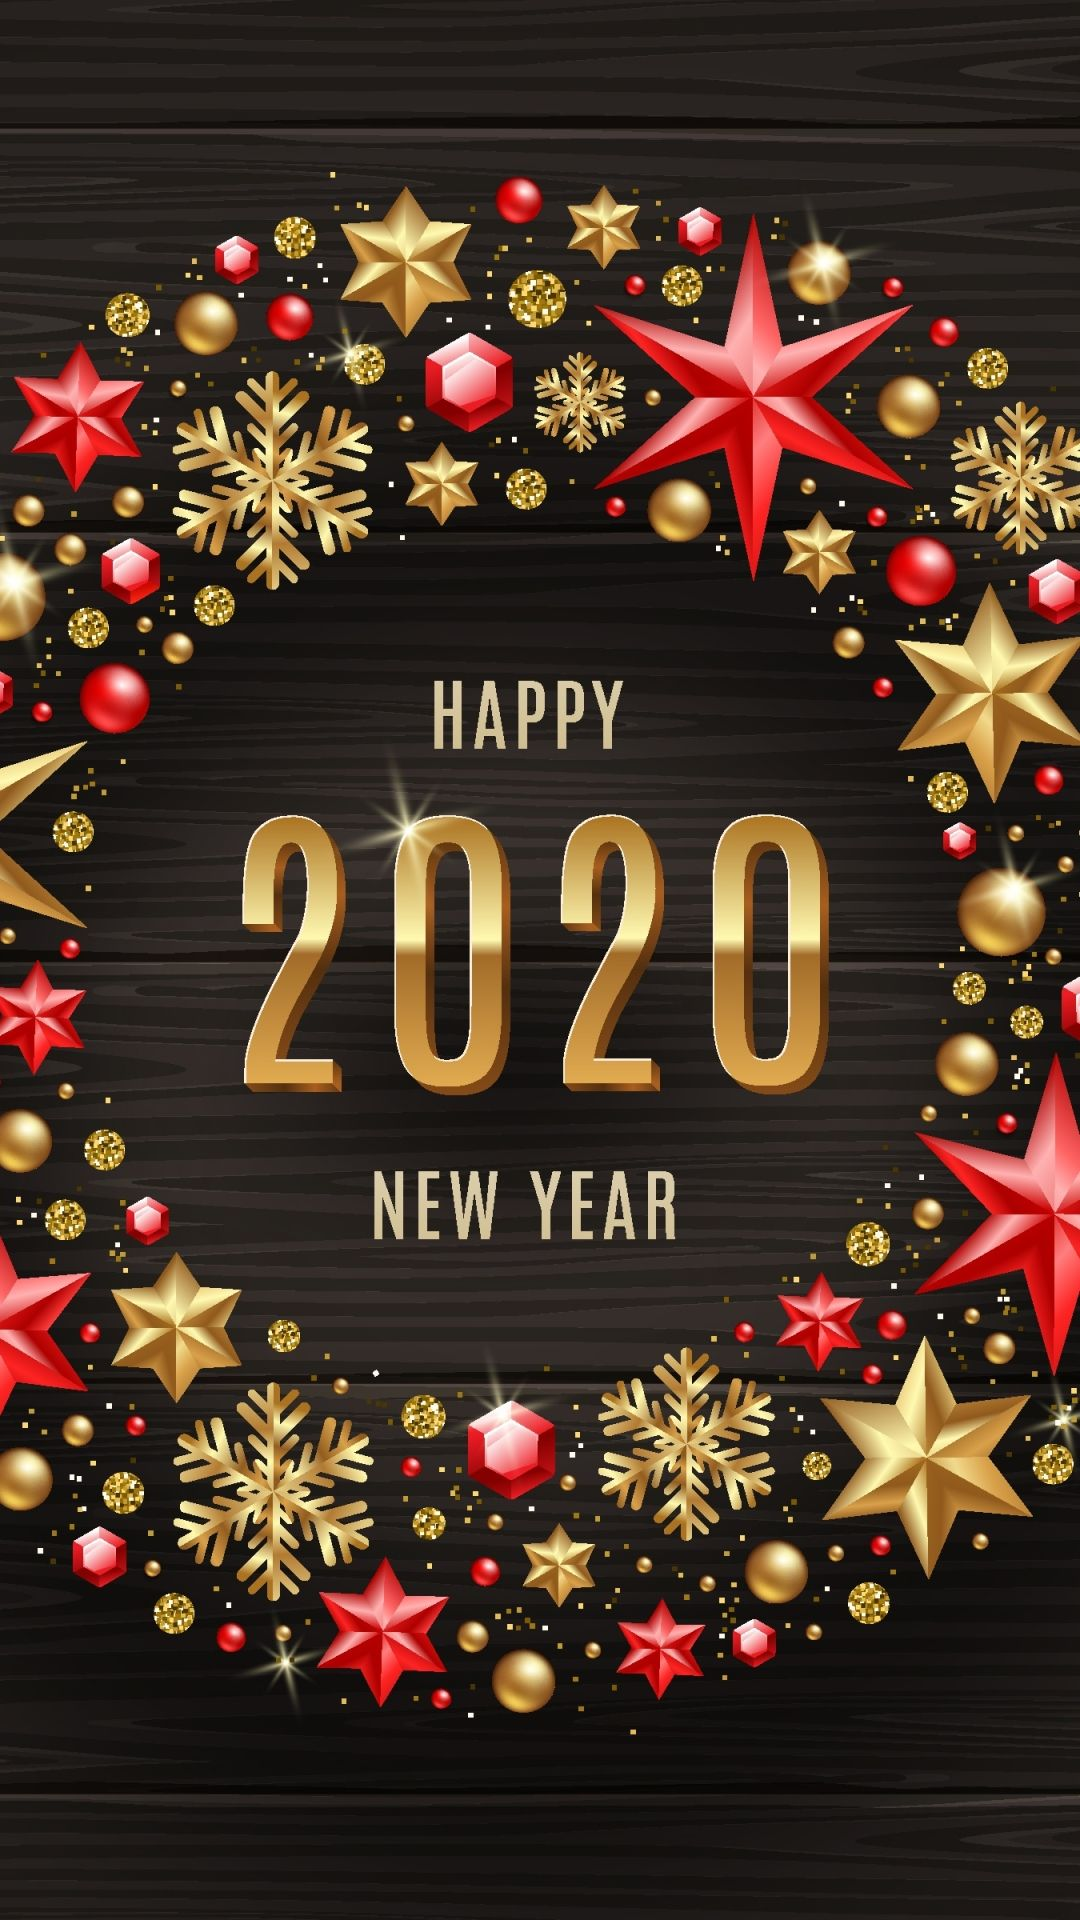 Download Happy New Year 2020 Wishes Wallpaper For Your